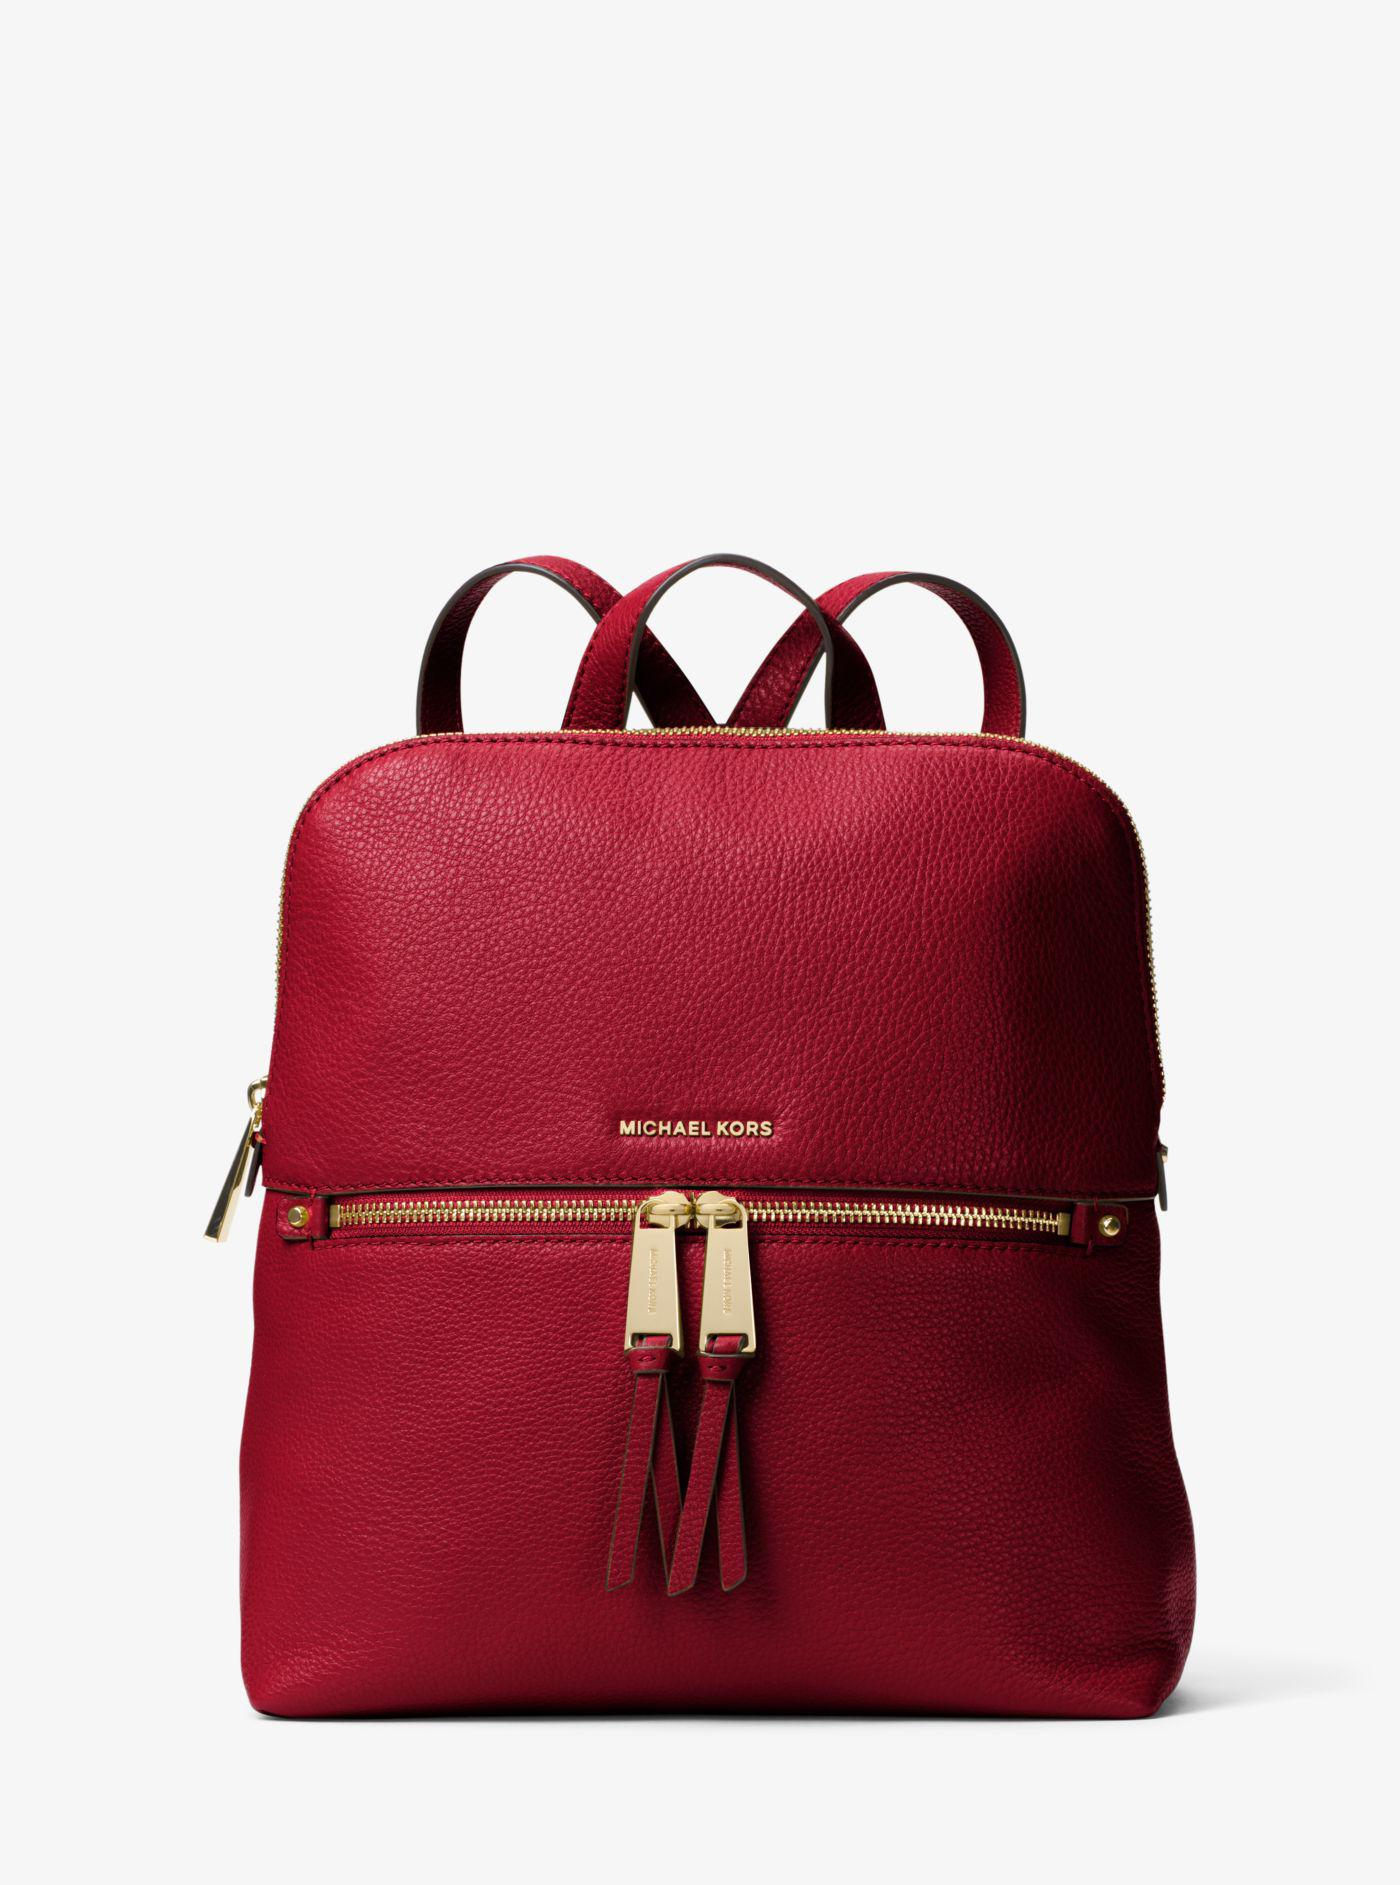 Lyst - Michael Kors Rhea Medium Slim Leather Backpack in Red f825d2cc79